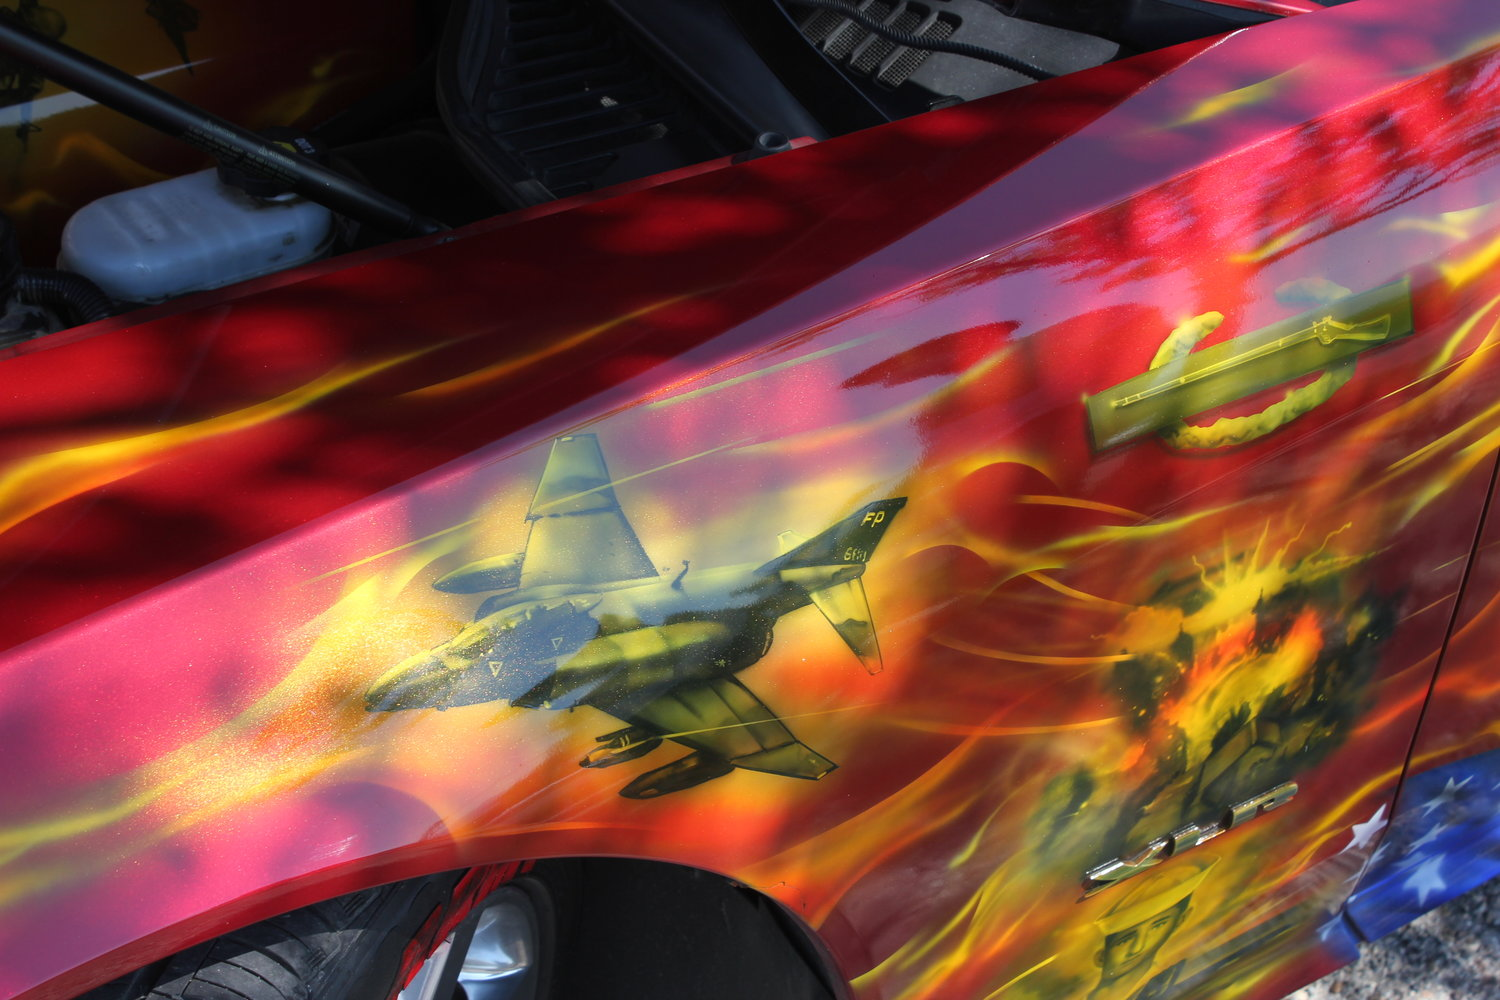 Among Luis Navarro's artwork is this depiction of a Vietnam-era F-4 fighter.